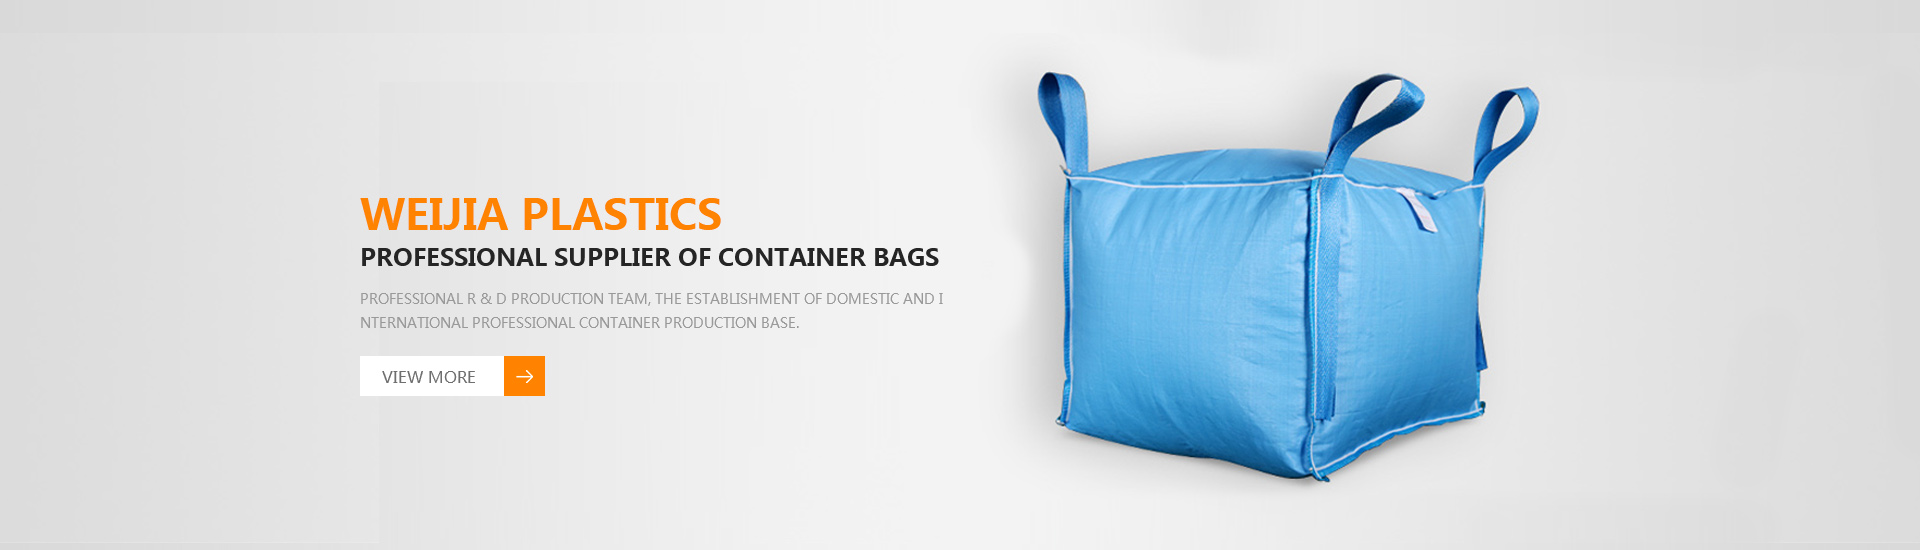 Weijia Plastics--Professional supplier of container bags